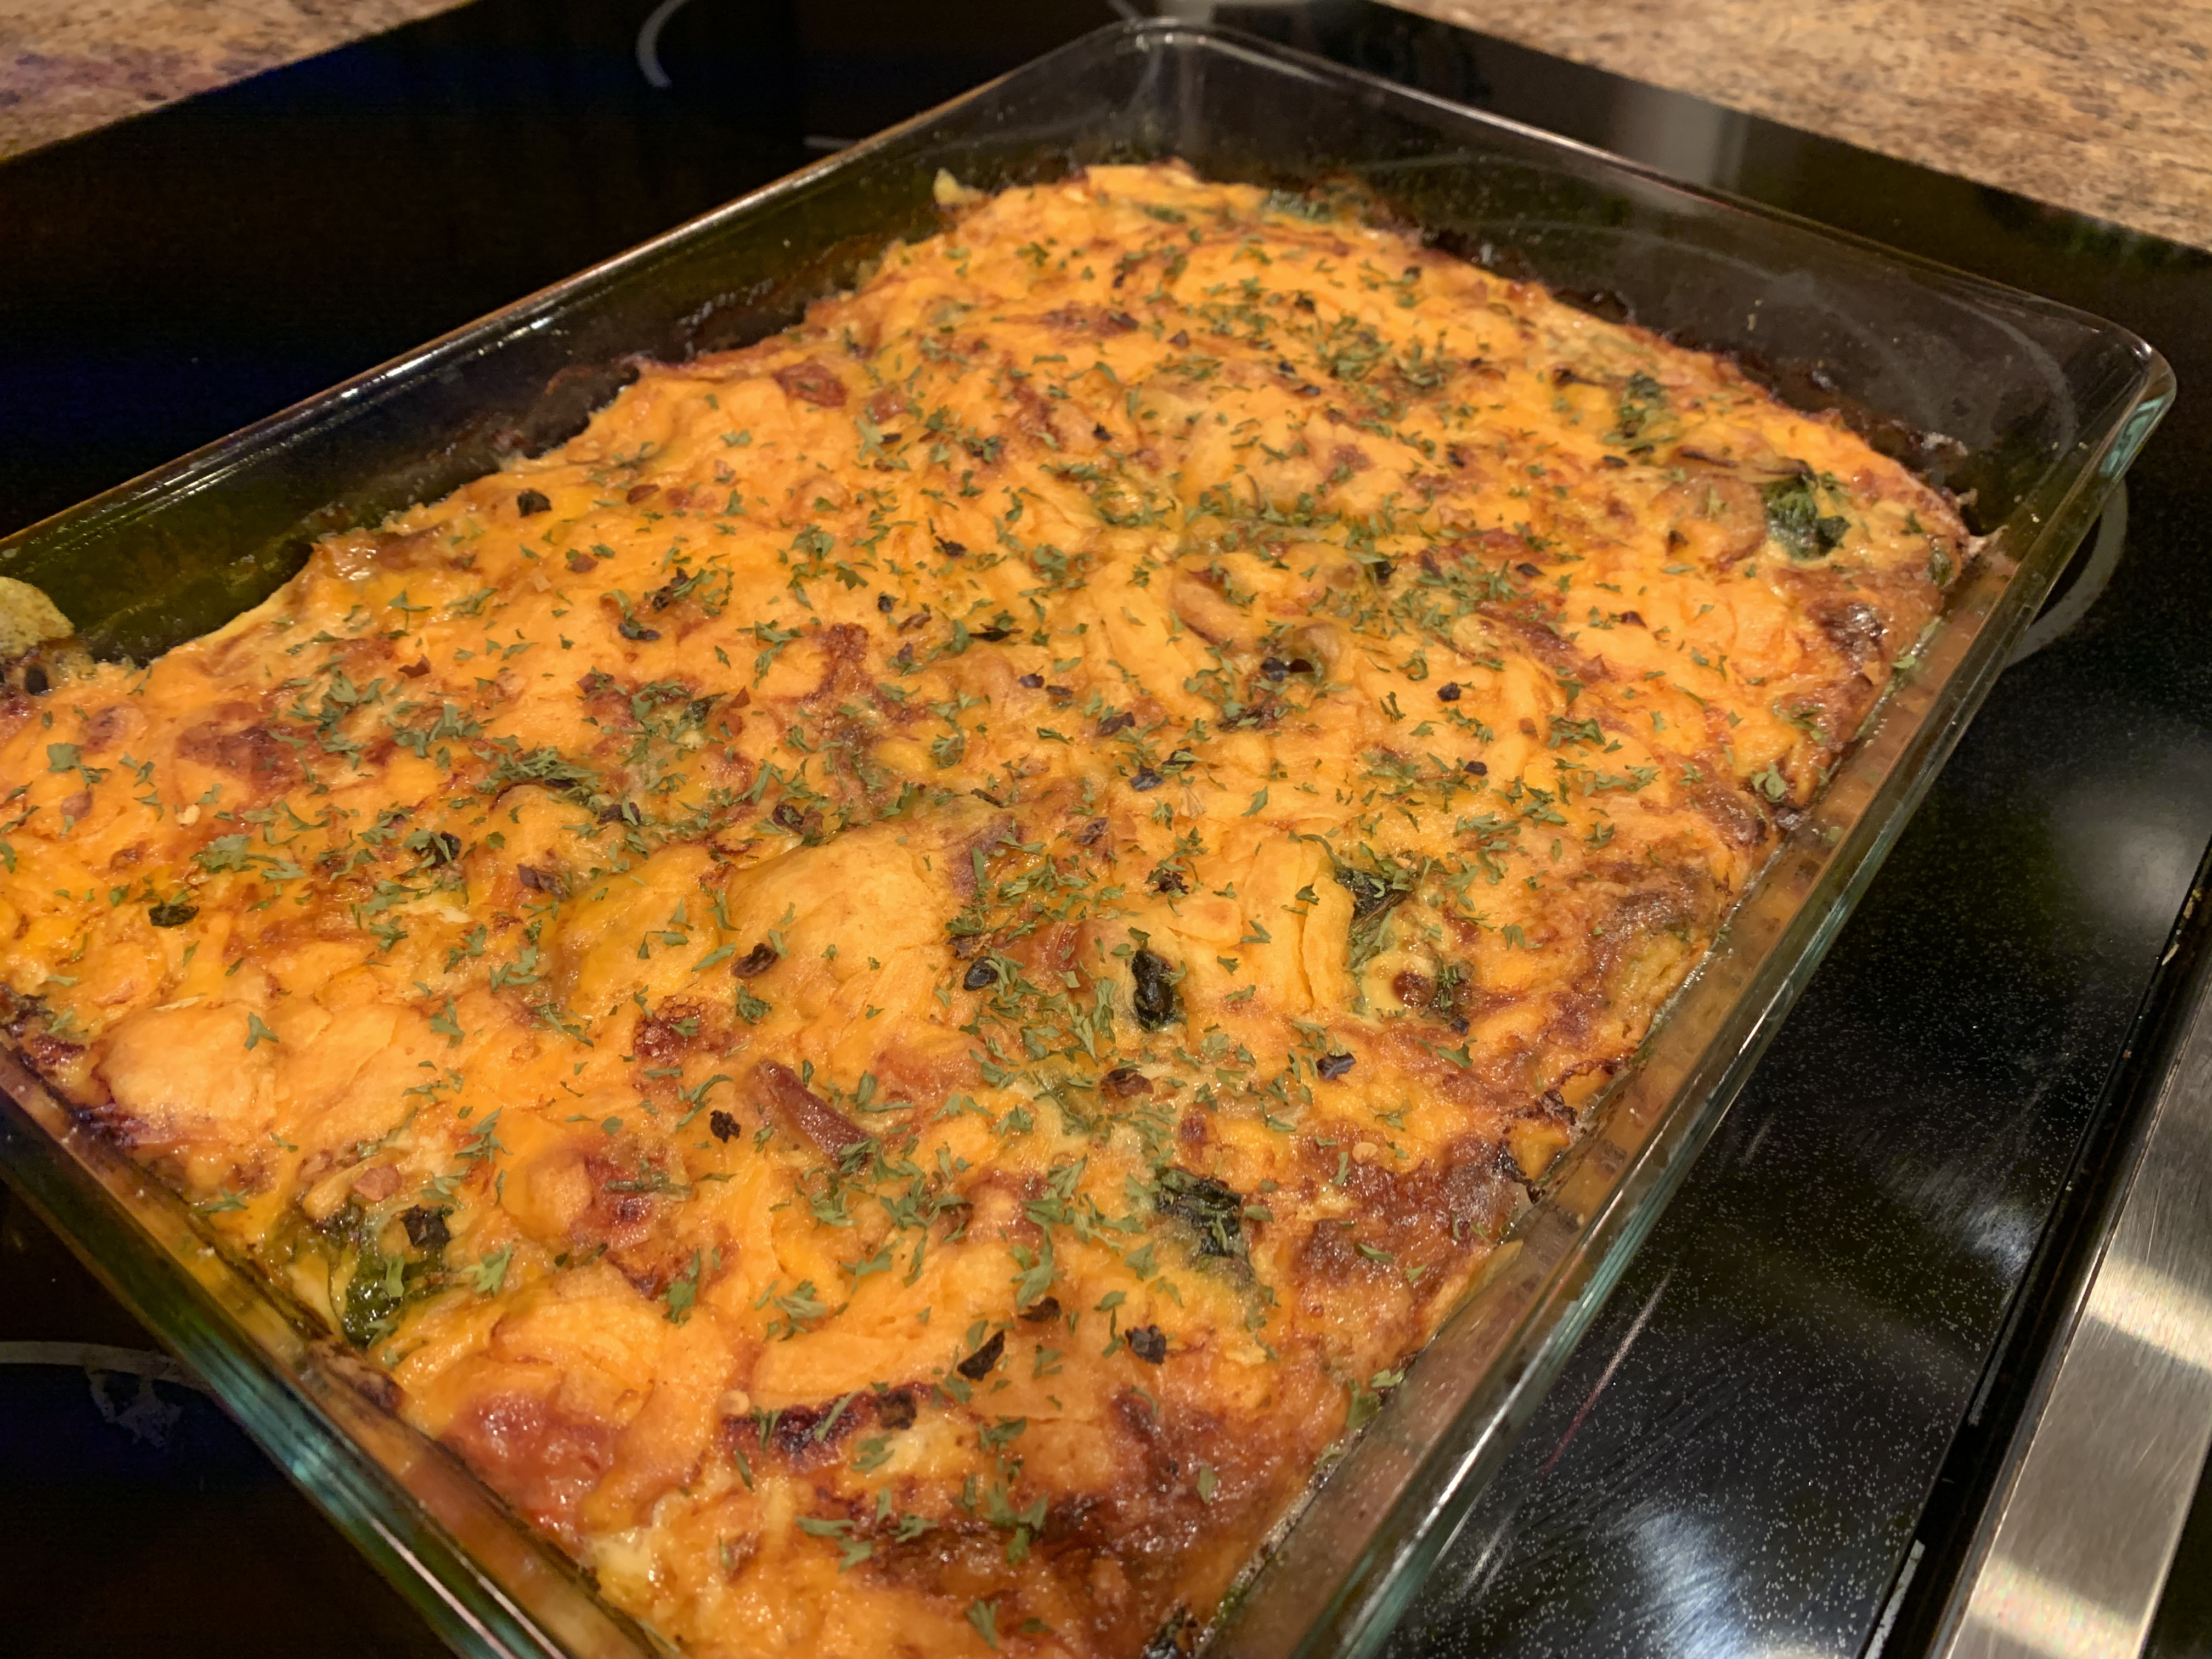 Cheesy Sausage and Egg Keto Casserole SIDNEYYIN